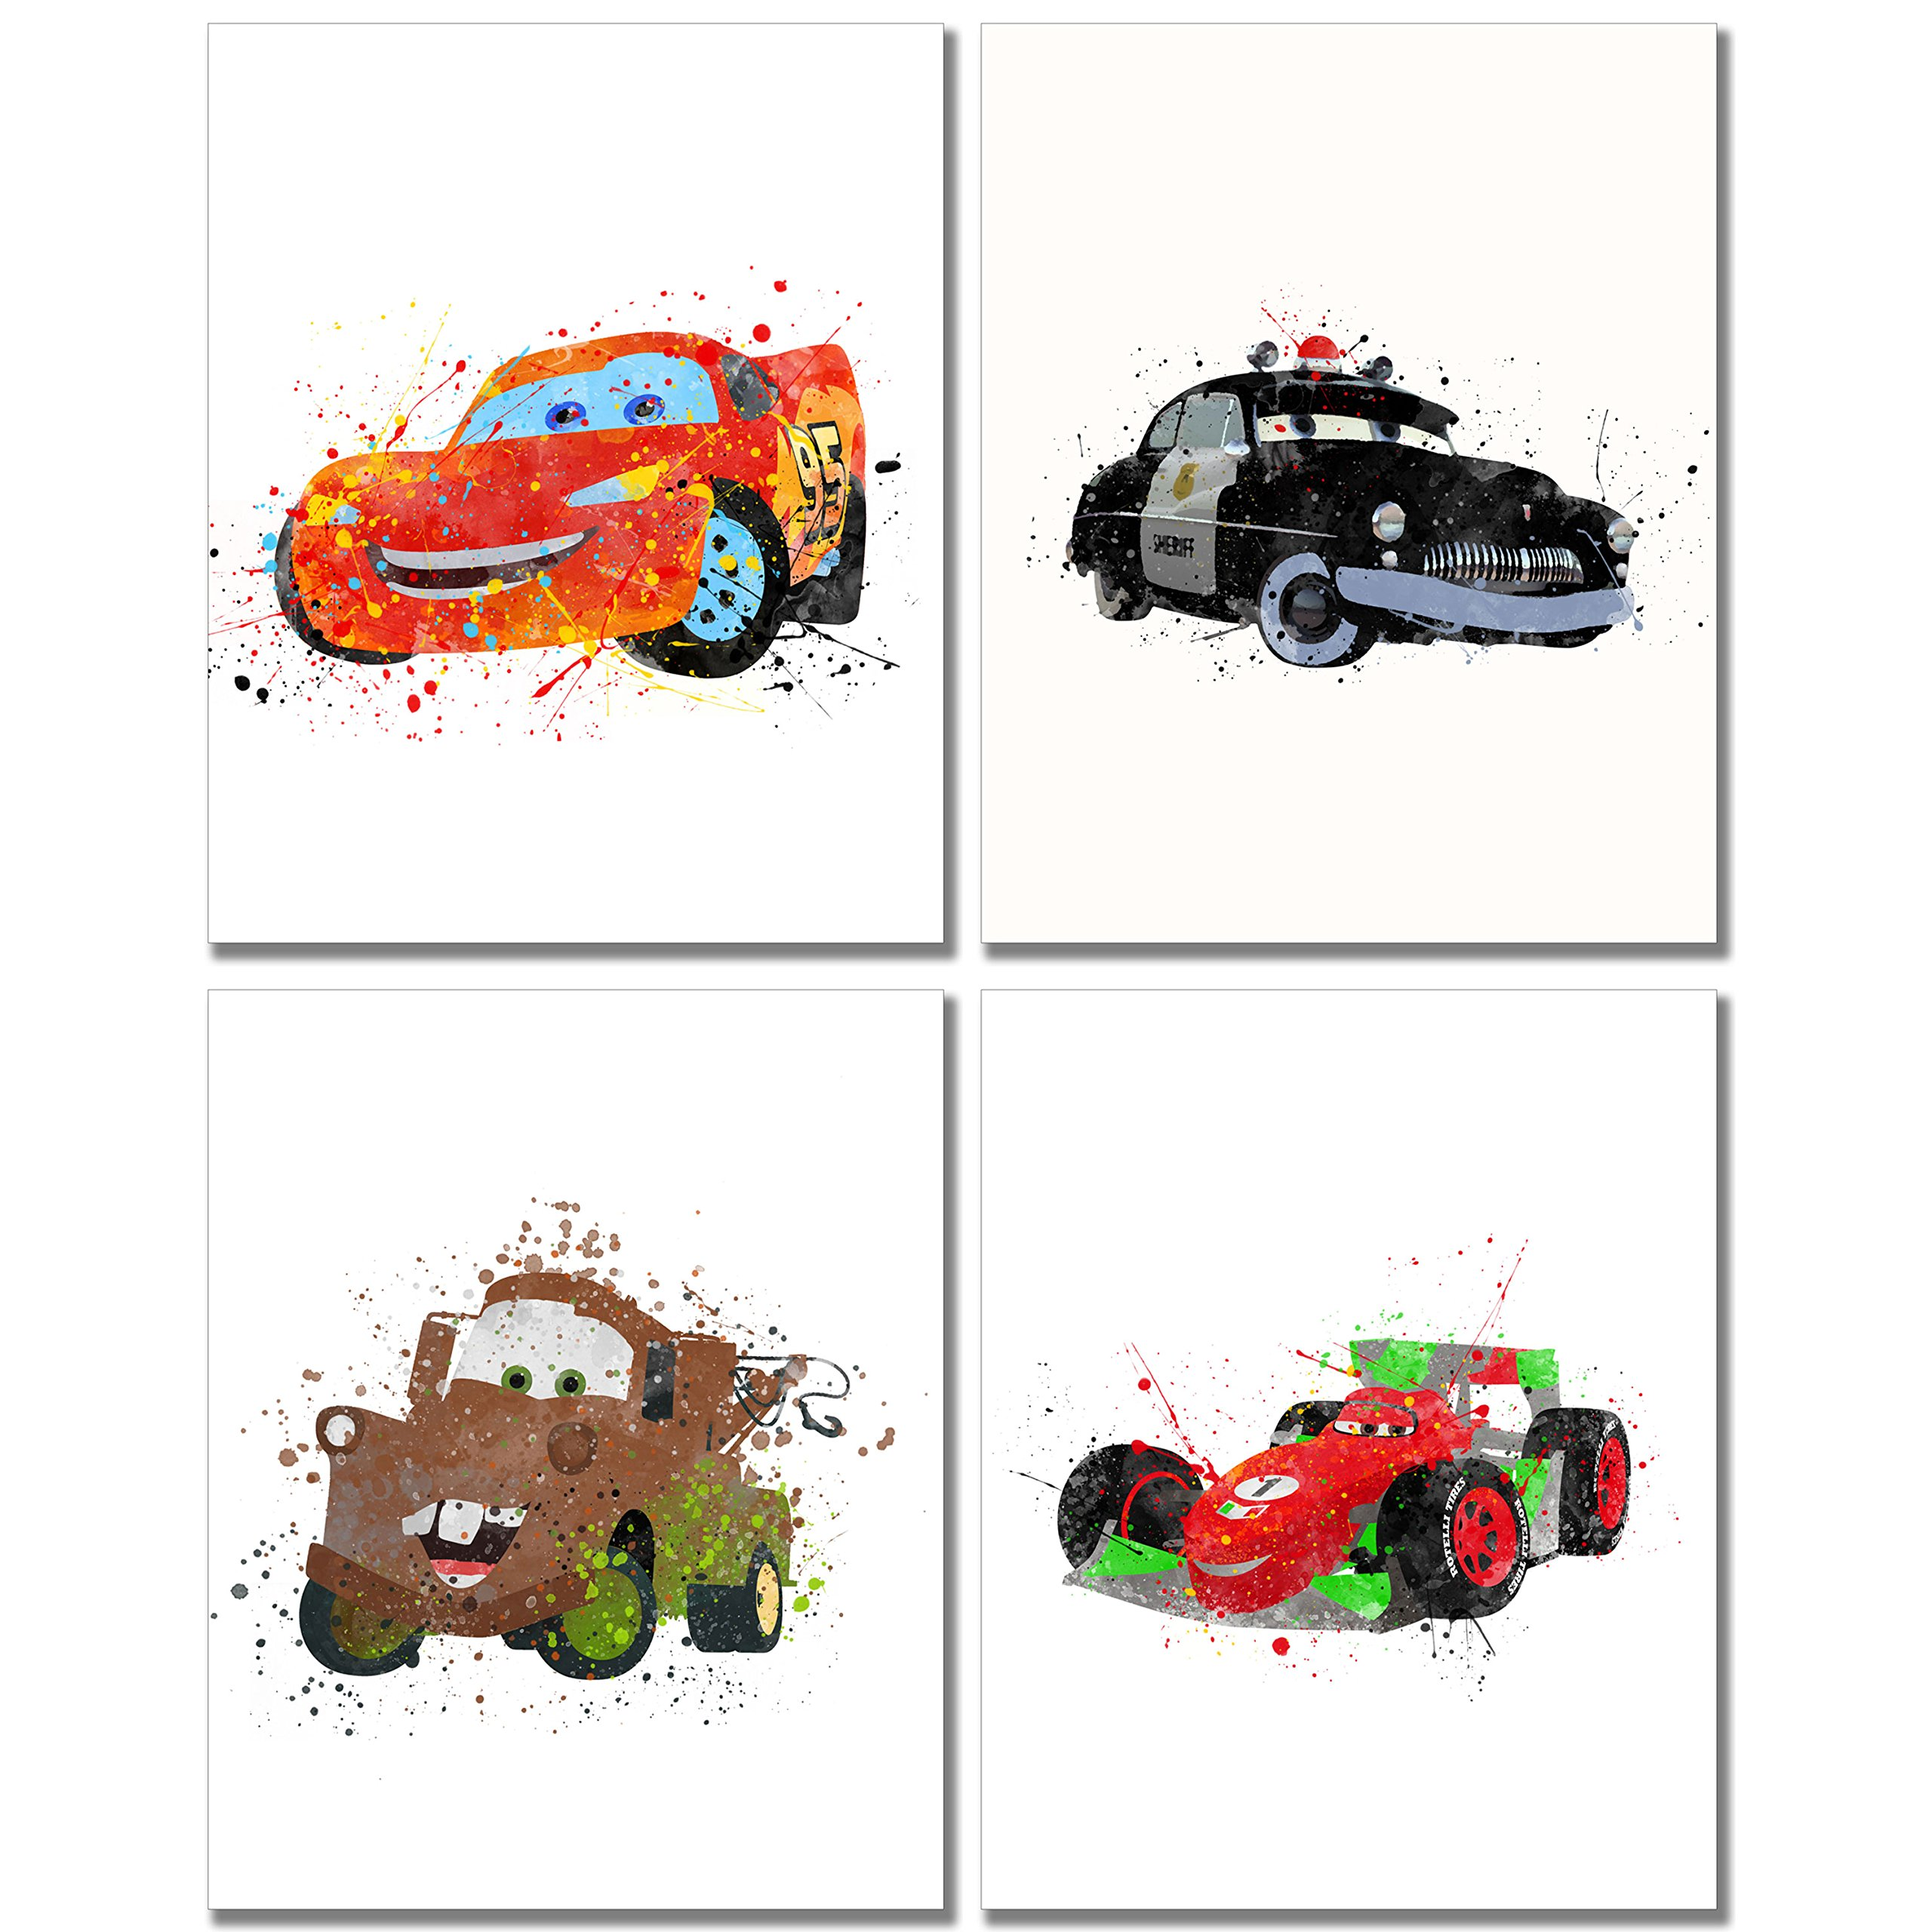 Cars Watercolor Prints - Set of 4 (8 inches x 10 inches) Wall Art Decor Kids Bedroom Photos Lightning McQueen Tow Mater Francesco Bernoulli Sheriff by BigWig Prints